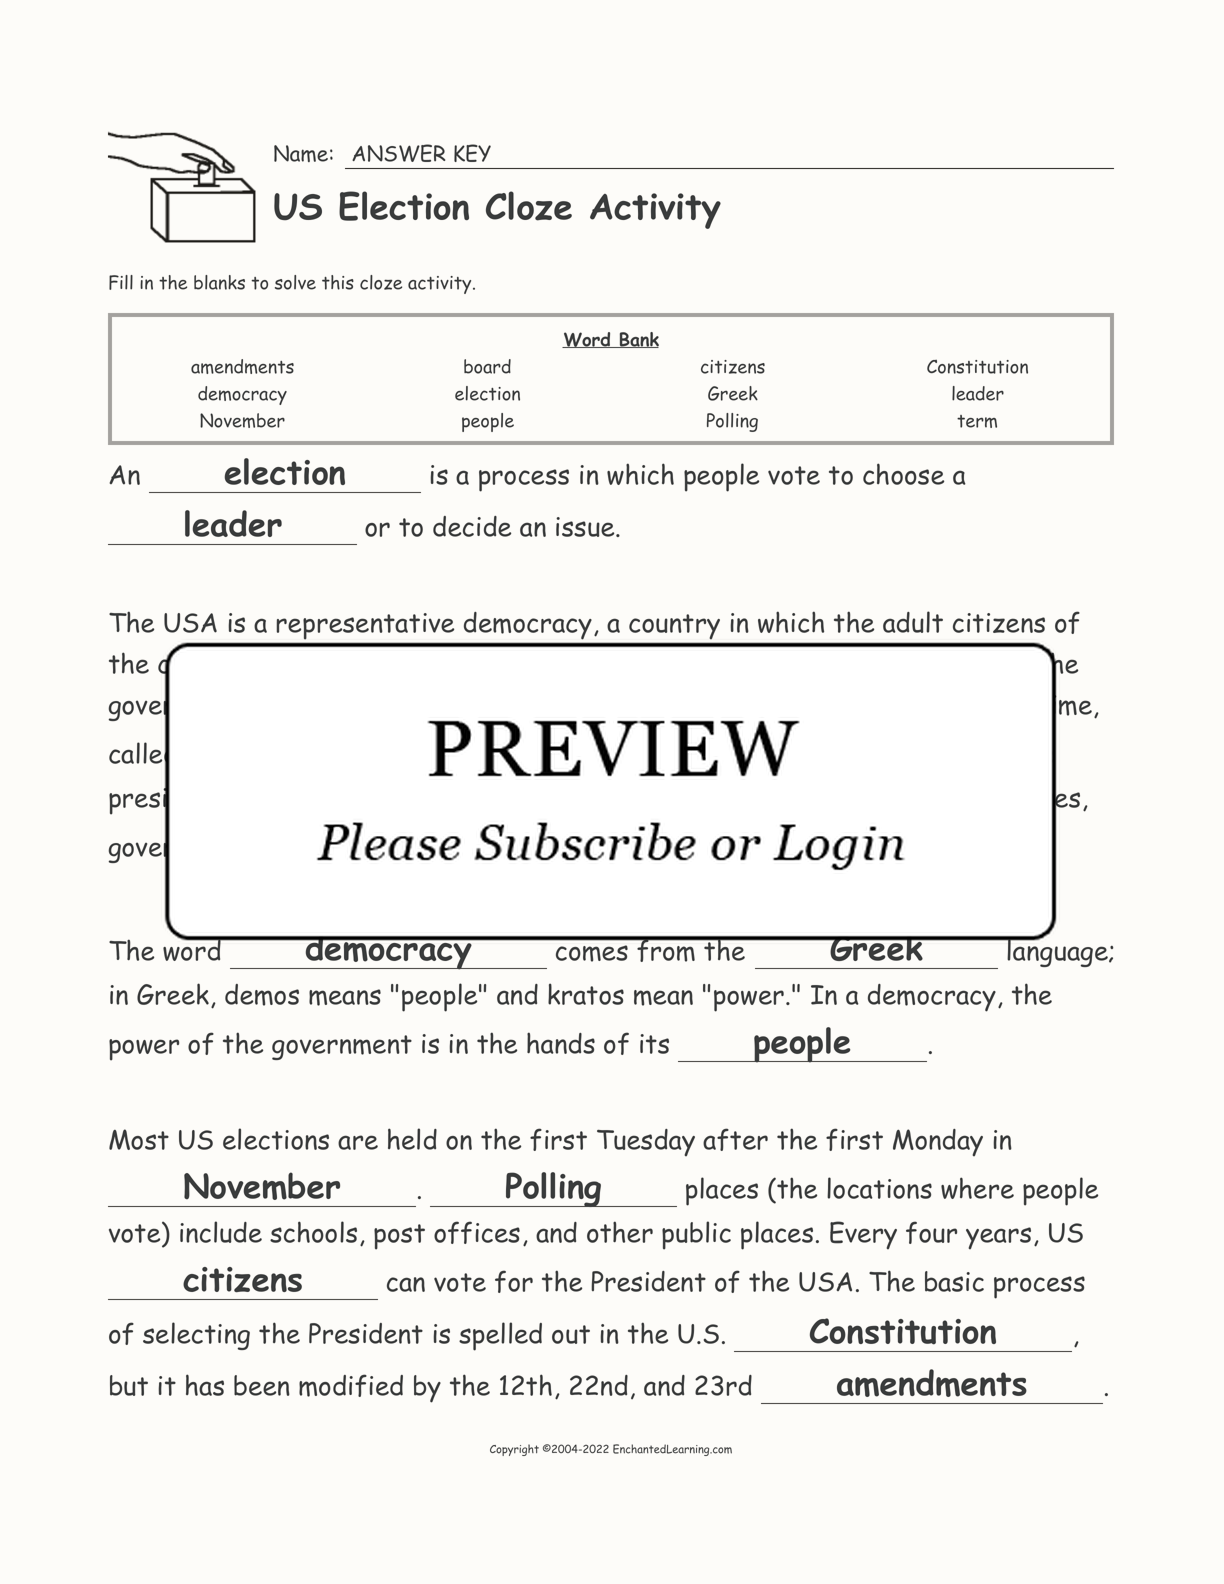 US Election Cloze Activity interactive worksheet page 2